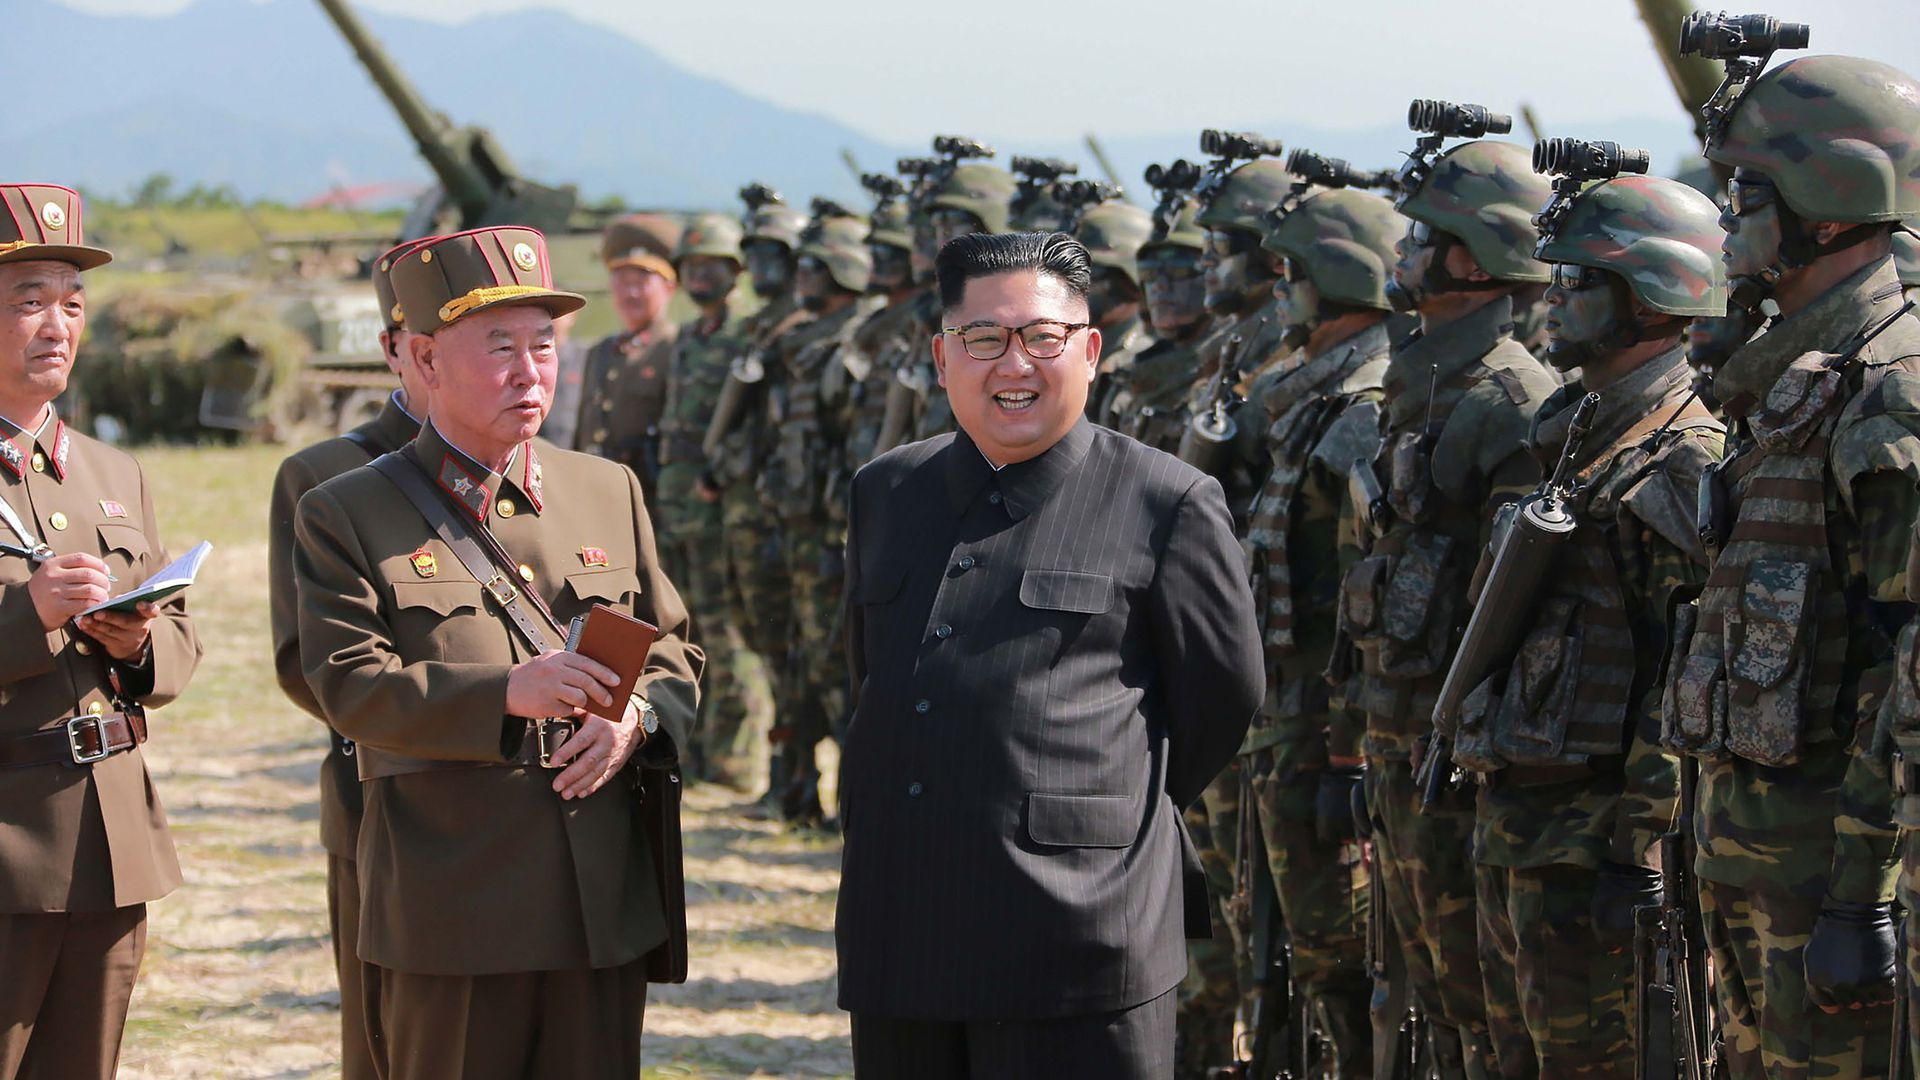 Kim Jong-un with soldiers and artillery